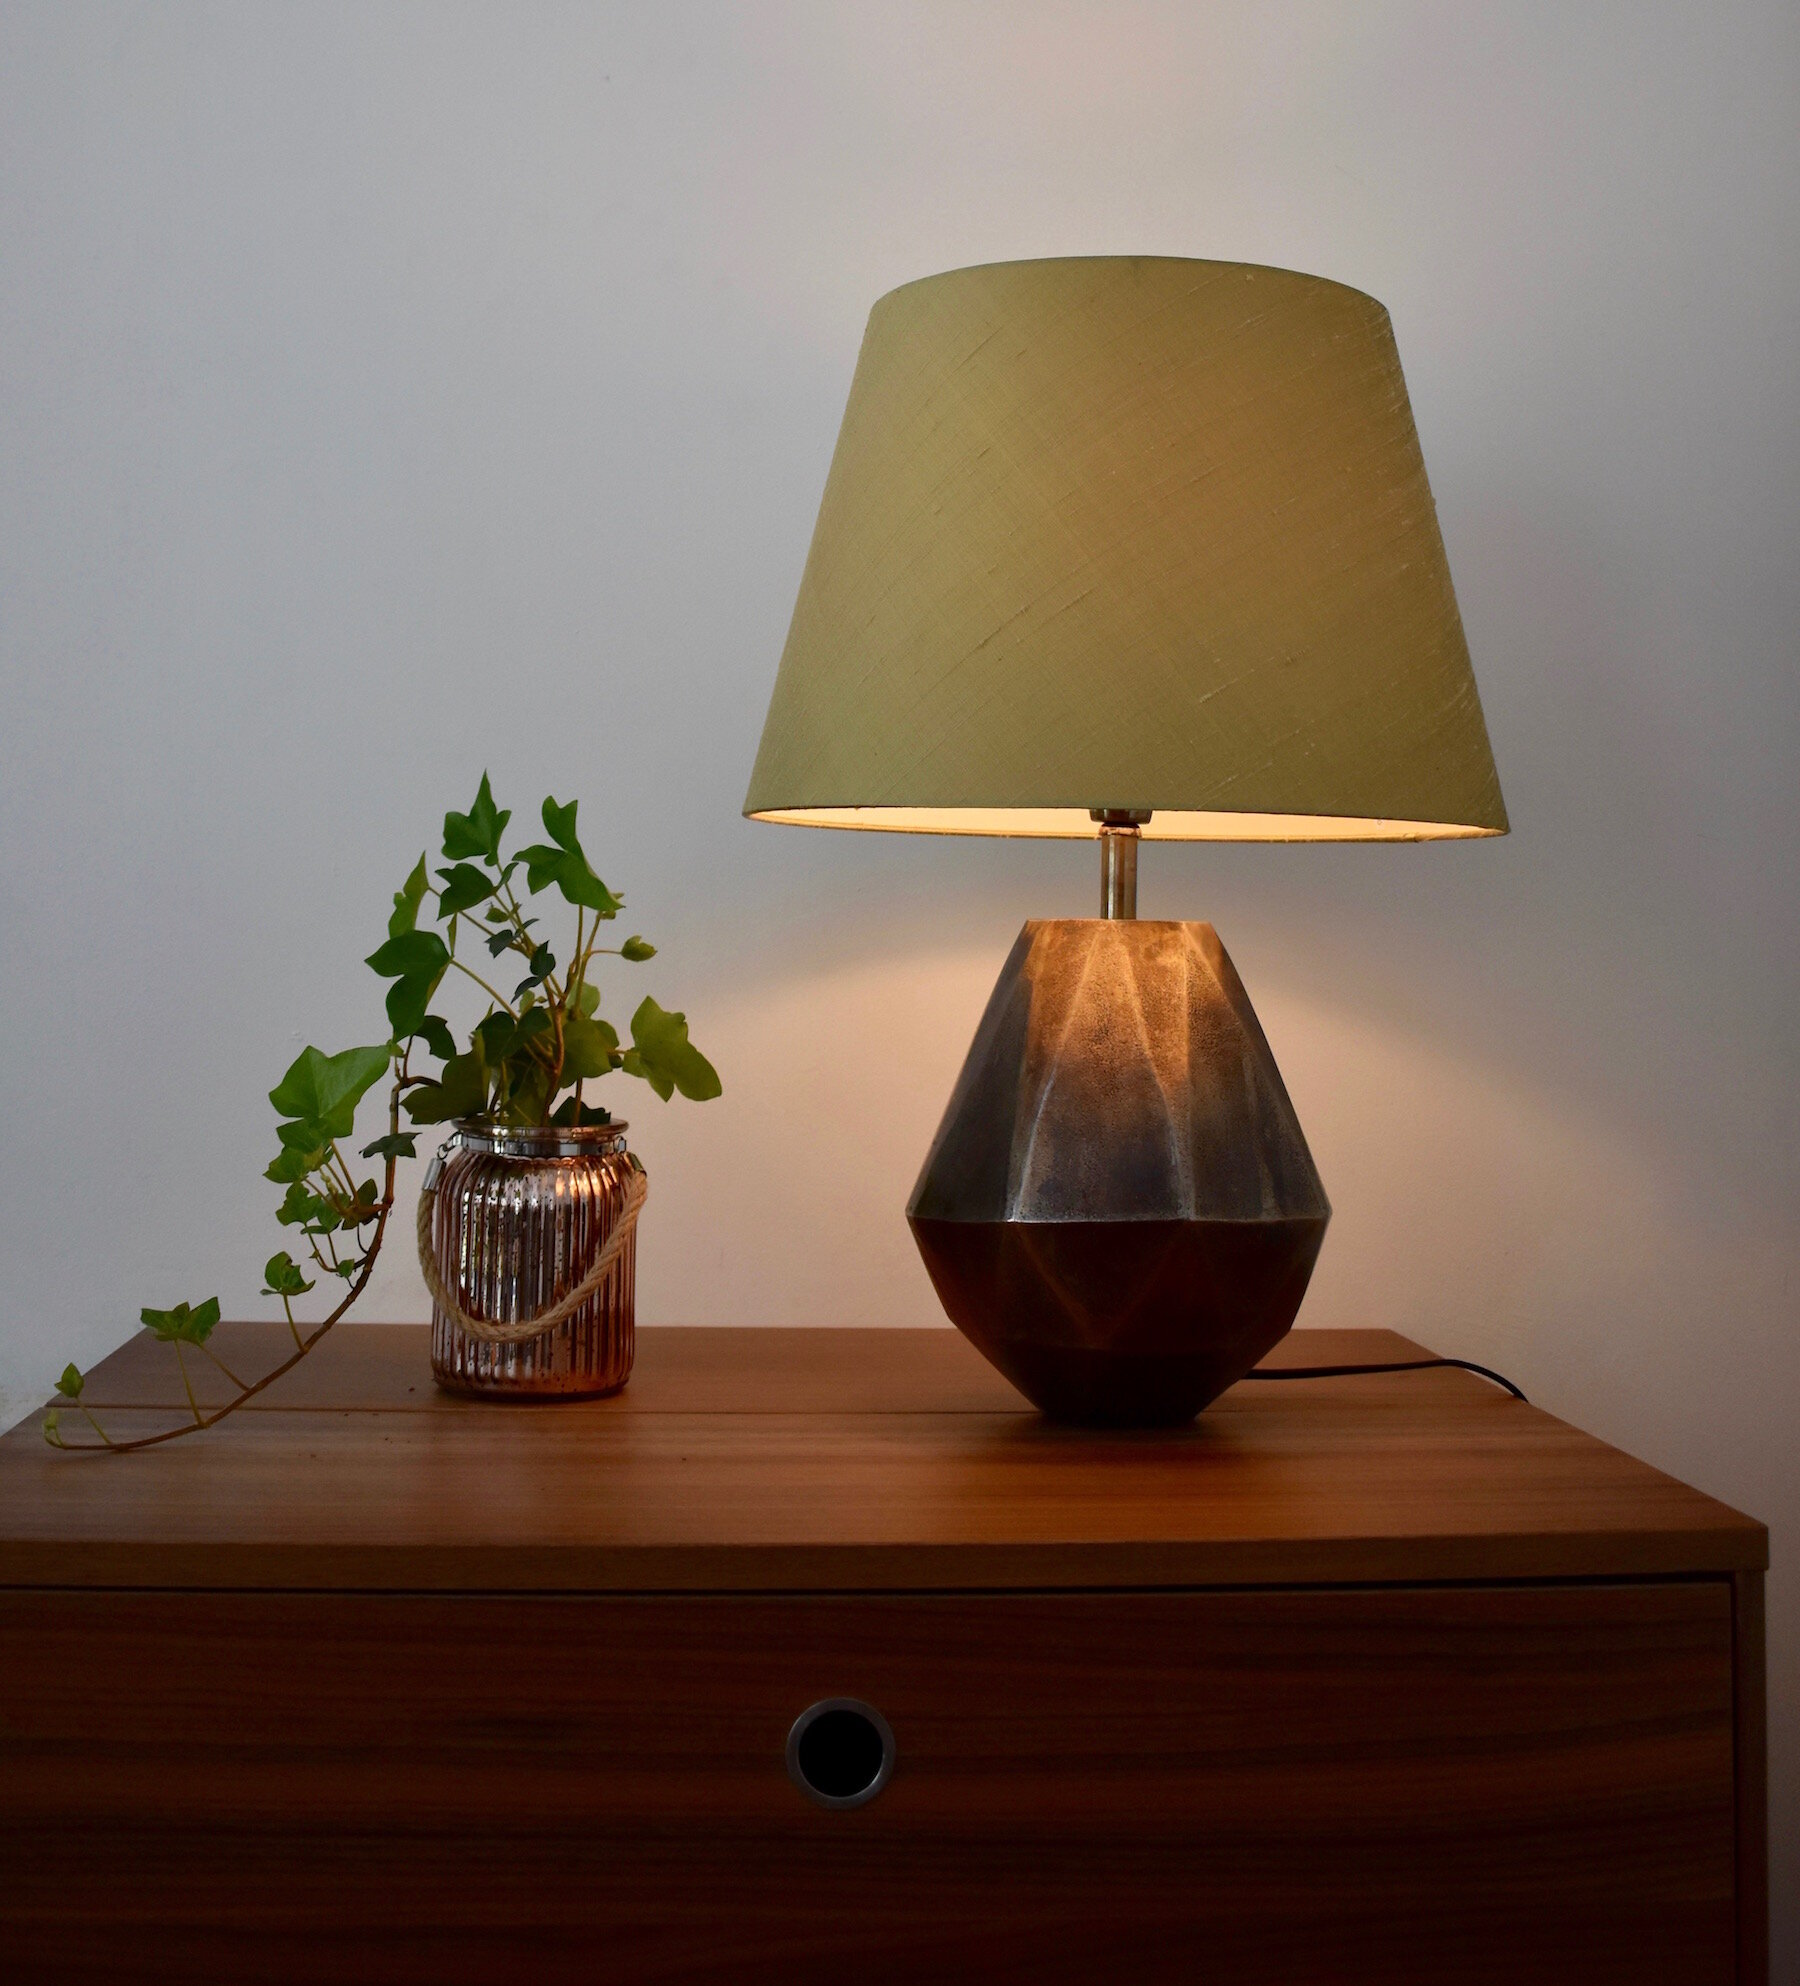 Lamp Shade Gallery Feature Lighting, Silk Lamp Shades For Table Lamps Uk